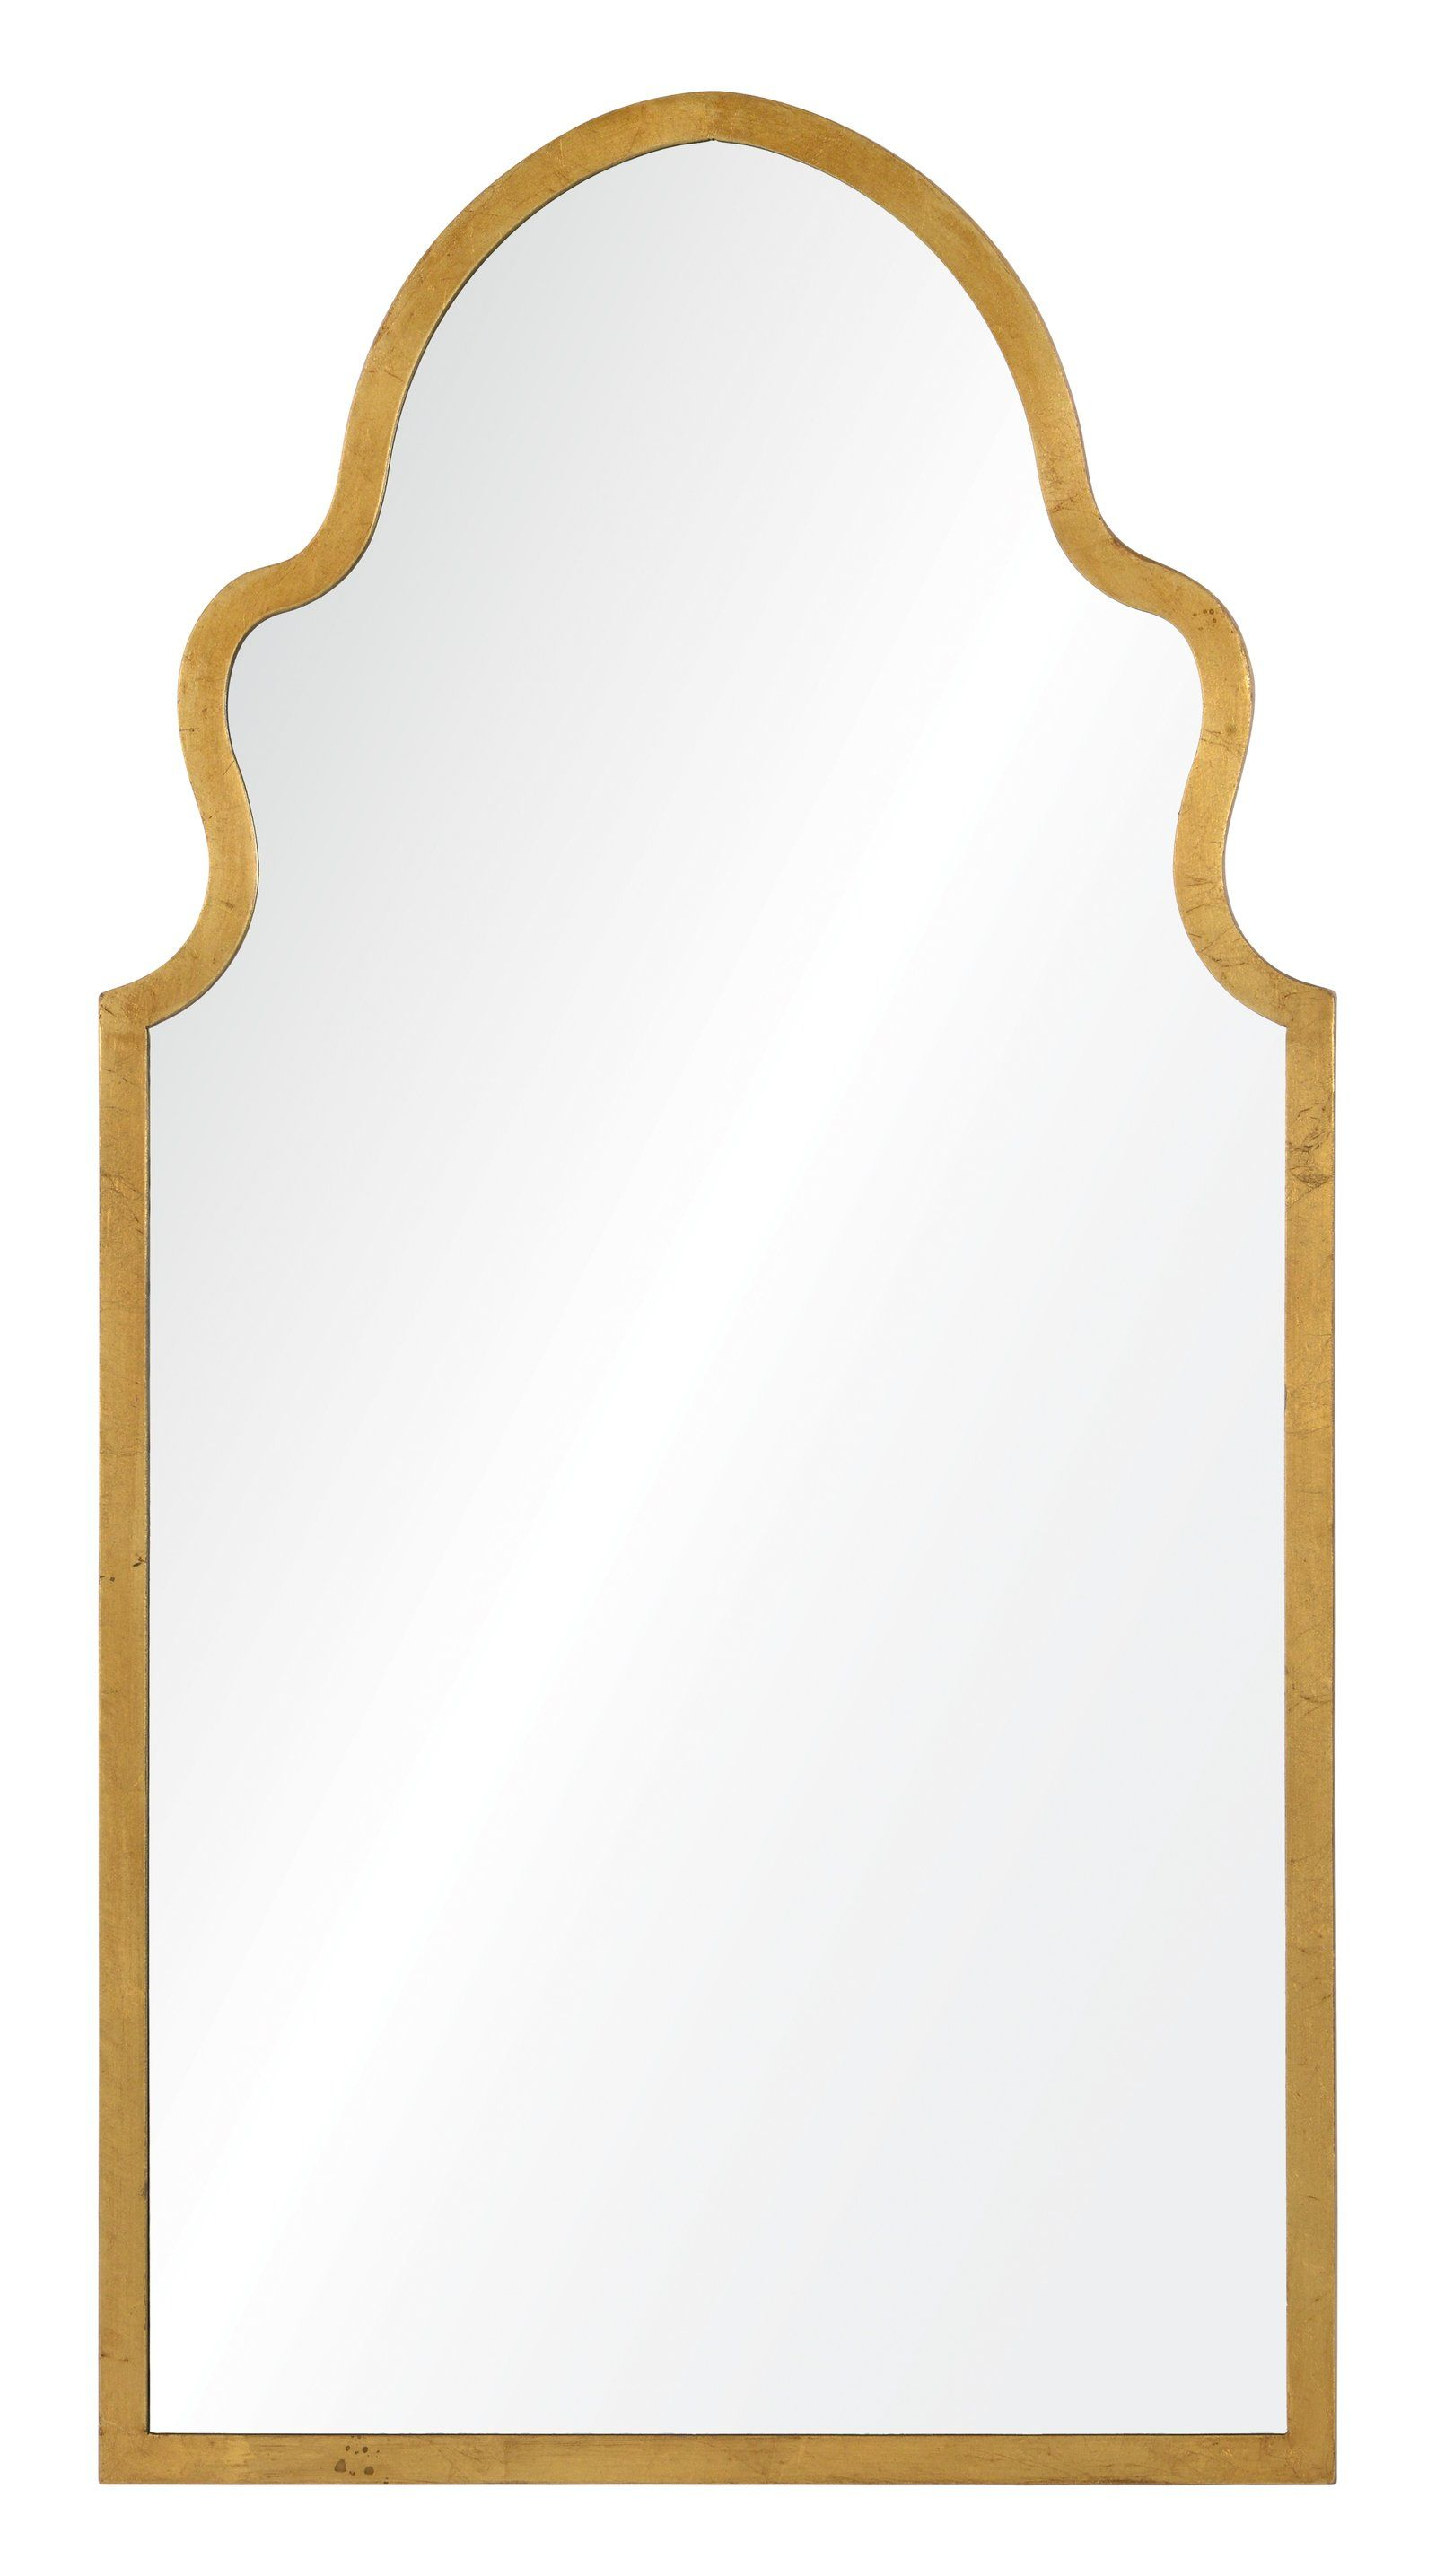 Menachem Modern & Contemporary Accent Mirror In 2019 | Hunt Within Menachem Modern & Contemporary Accent Mirrors (Image 16 of 30)